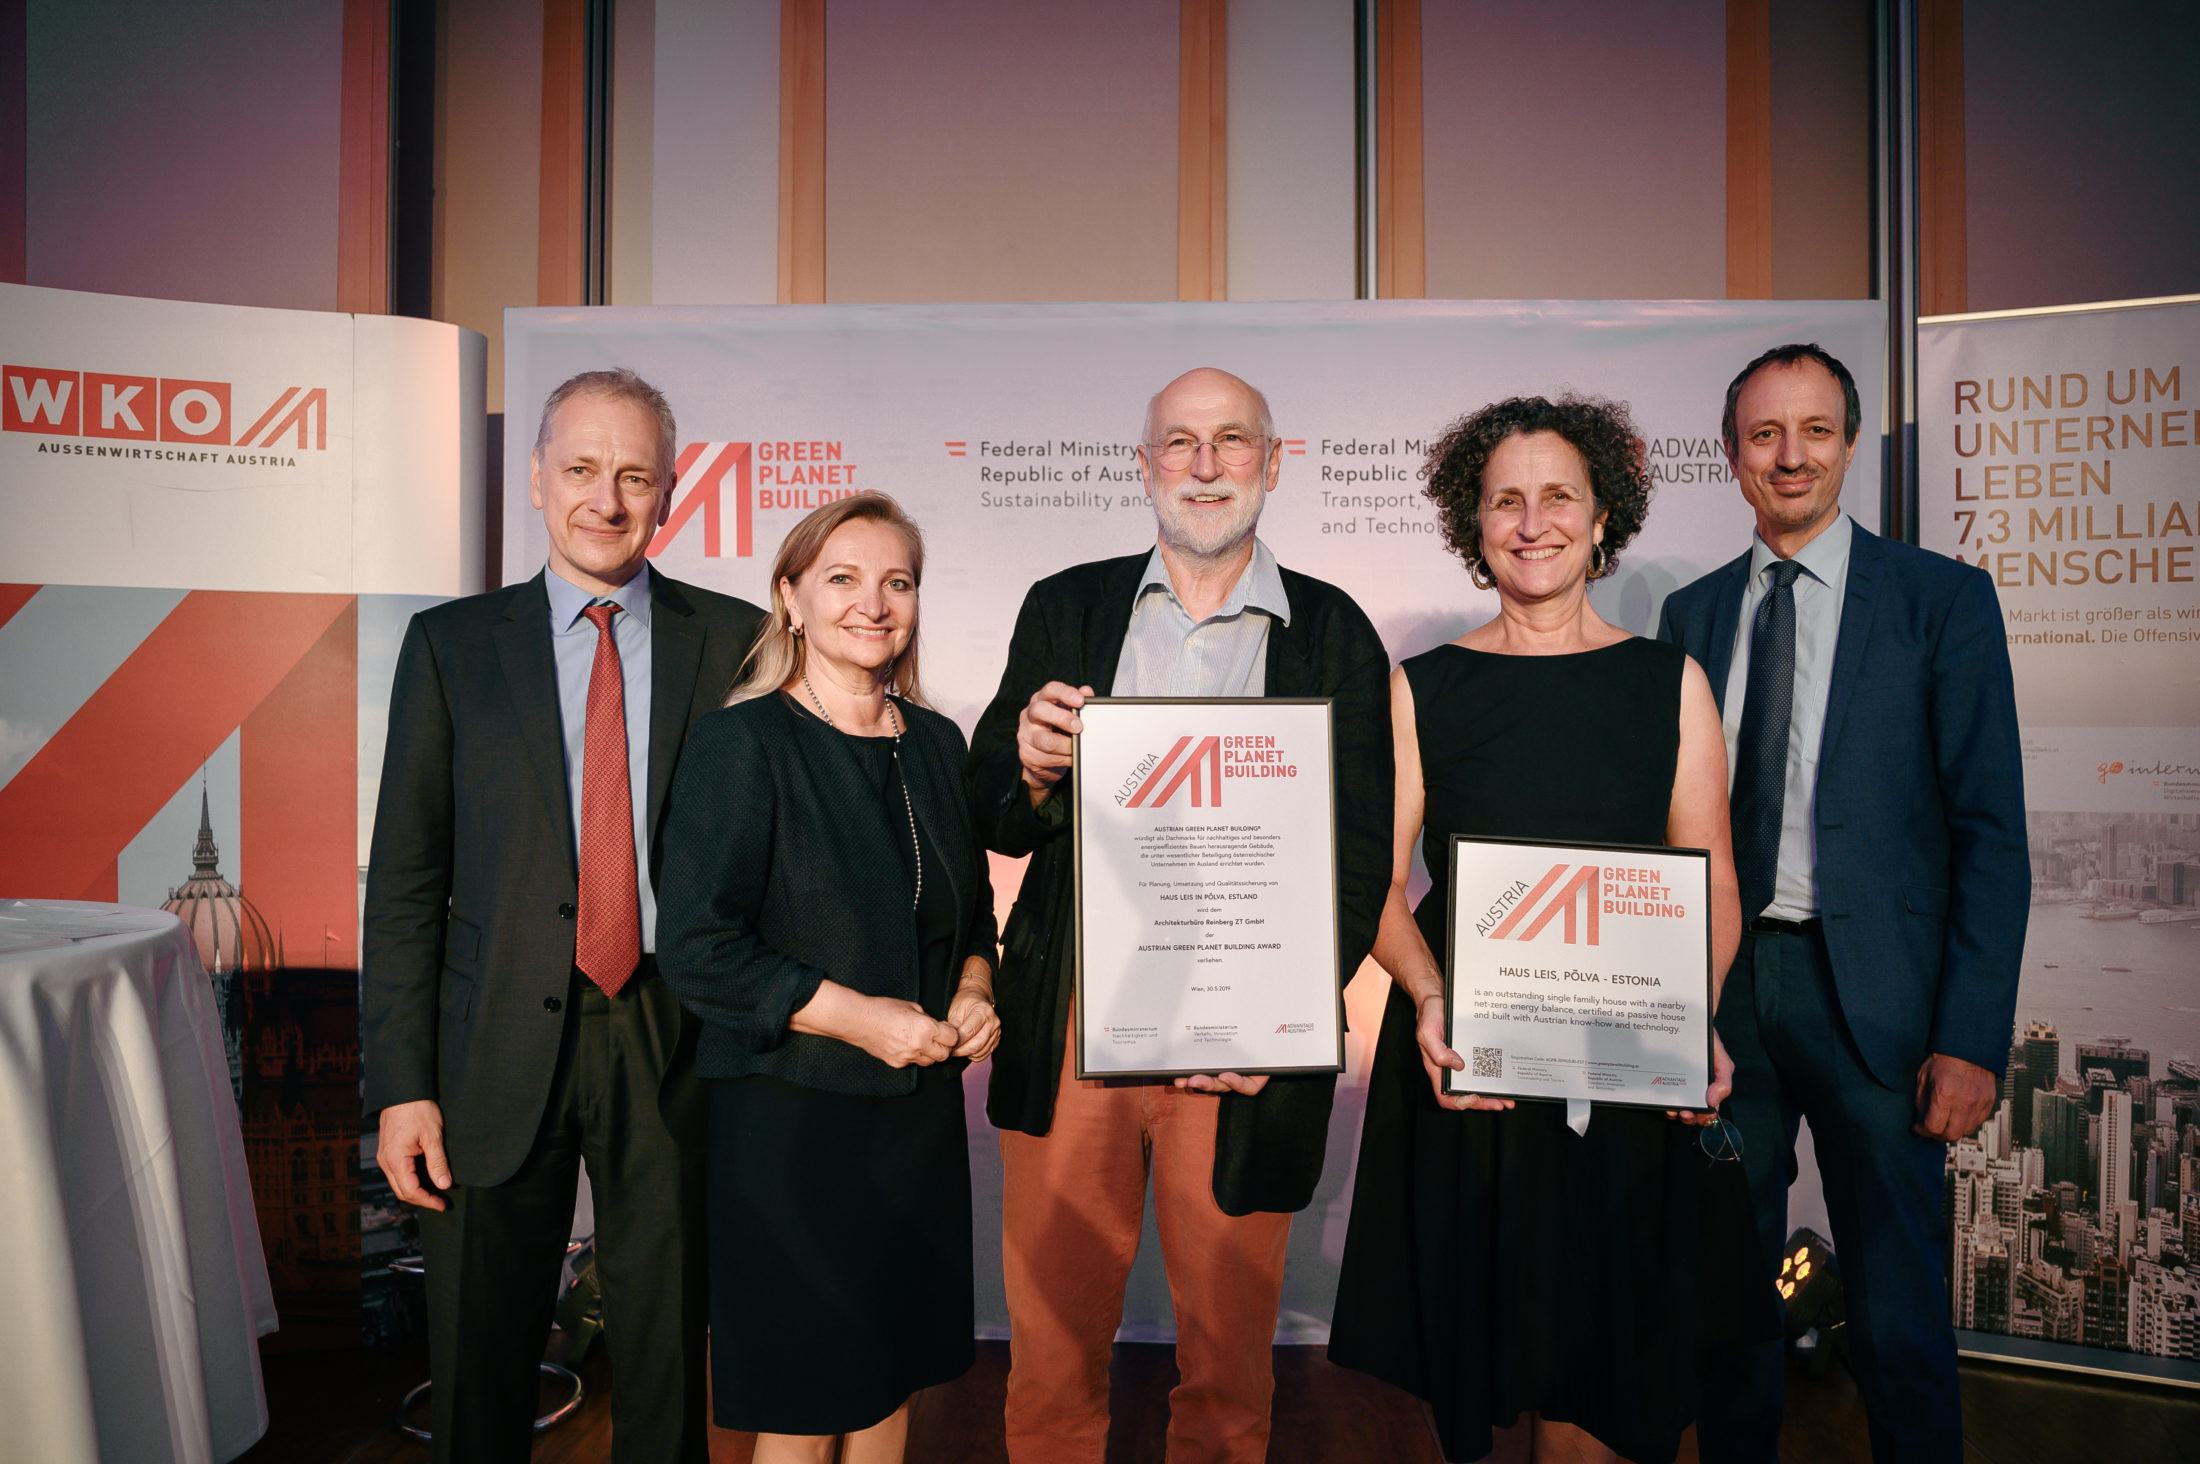 Austrian Green Planet Building Awards